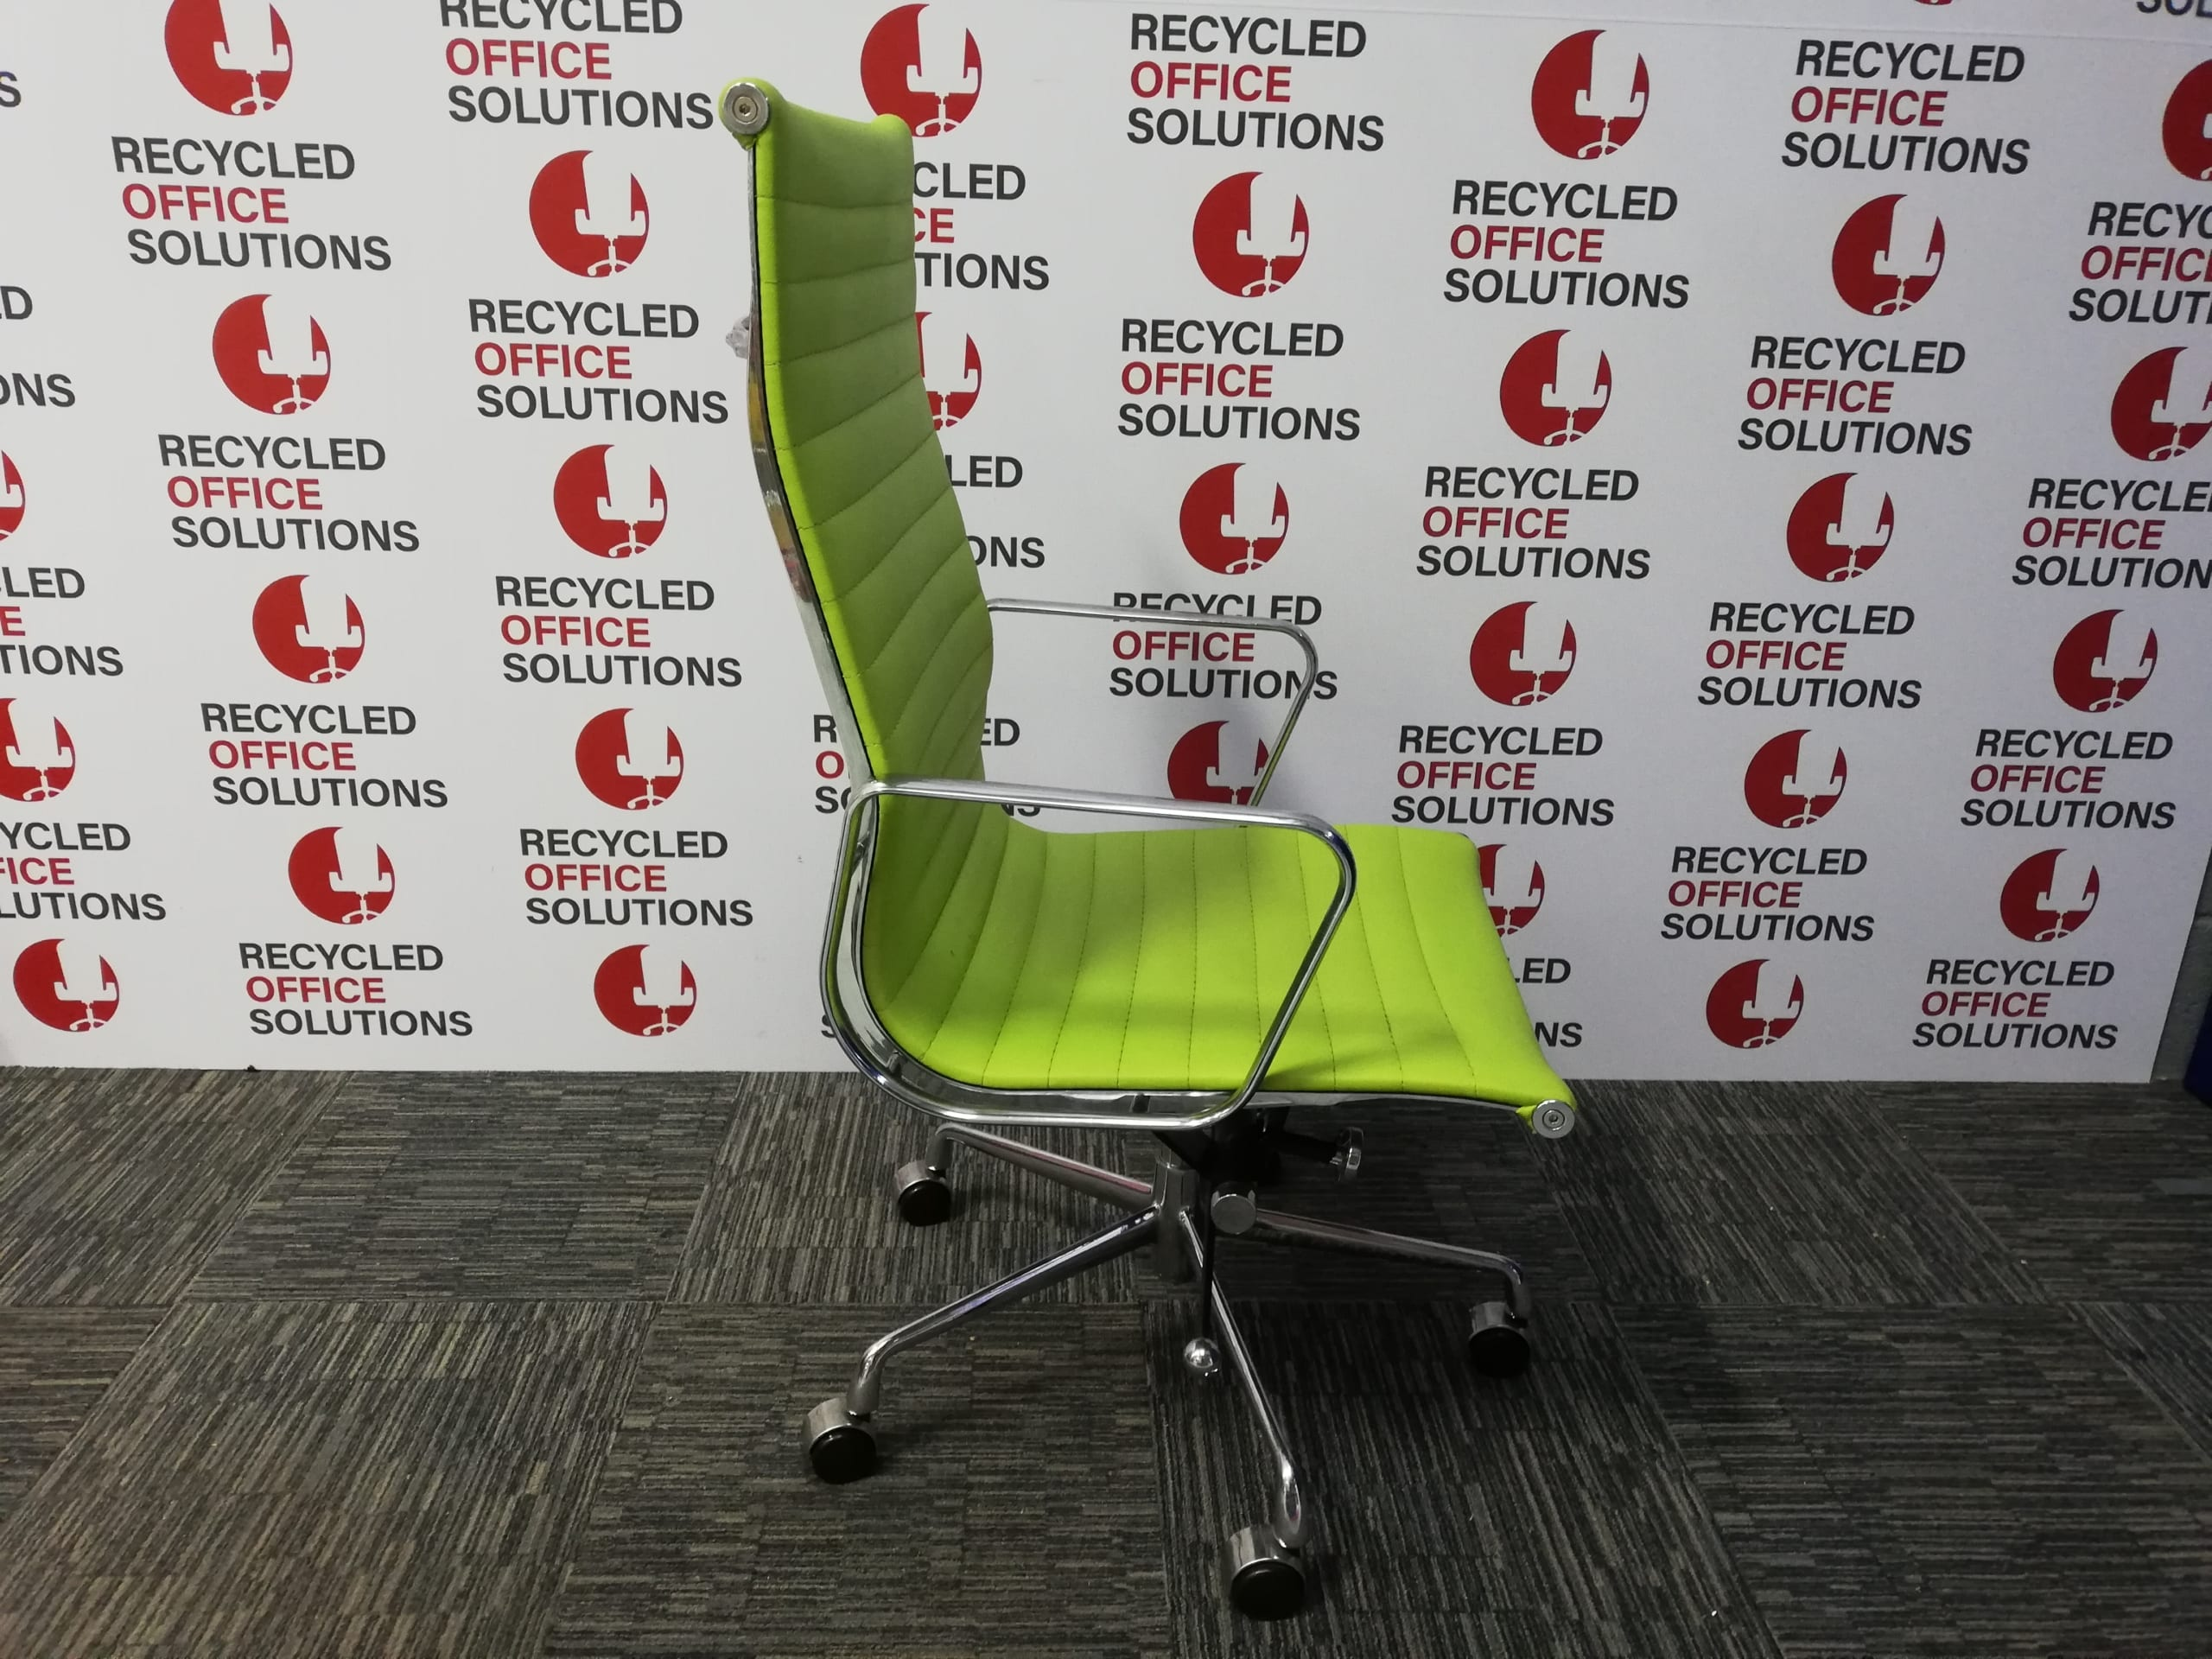 Picture of: Lime Green Executive Office Chair Recycled Office Solutions Recycled Office Furniture New Office Furniture Business And Corporate Office Clearance